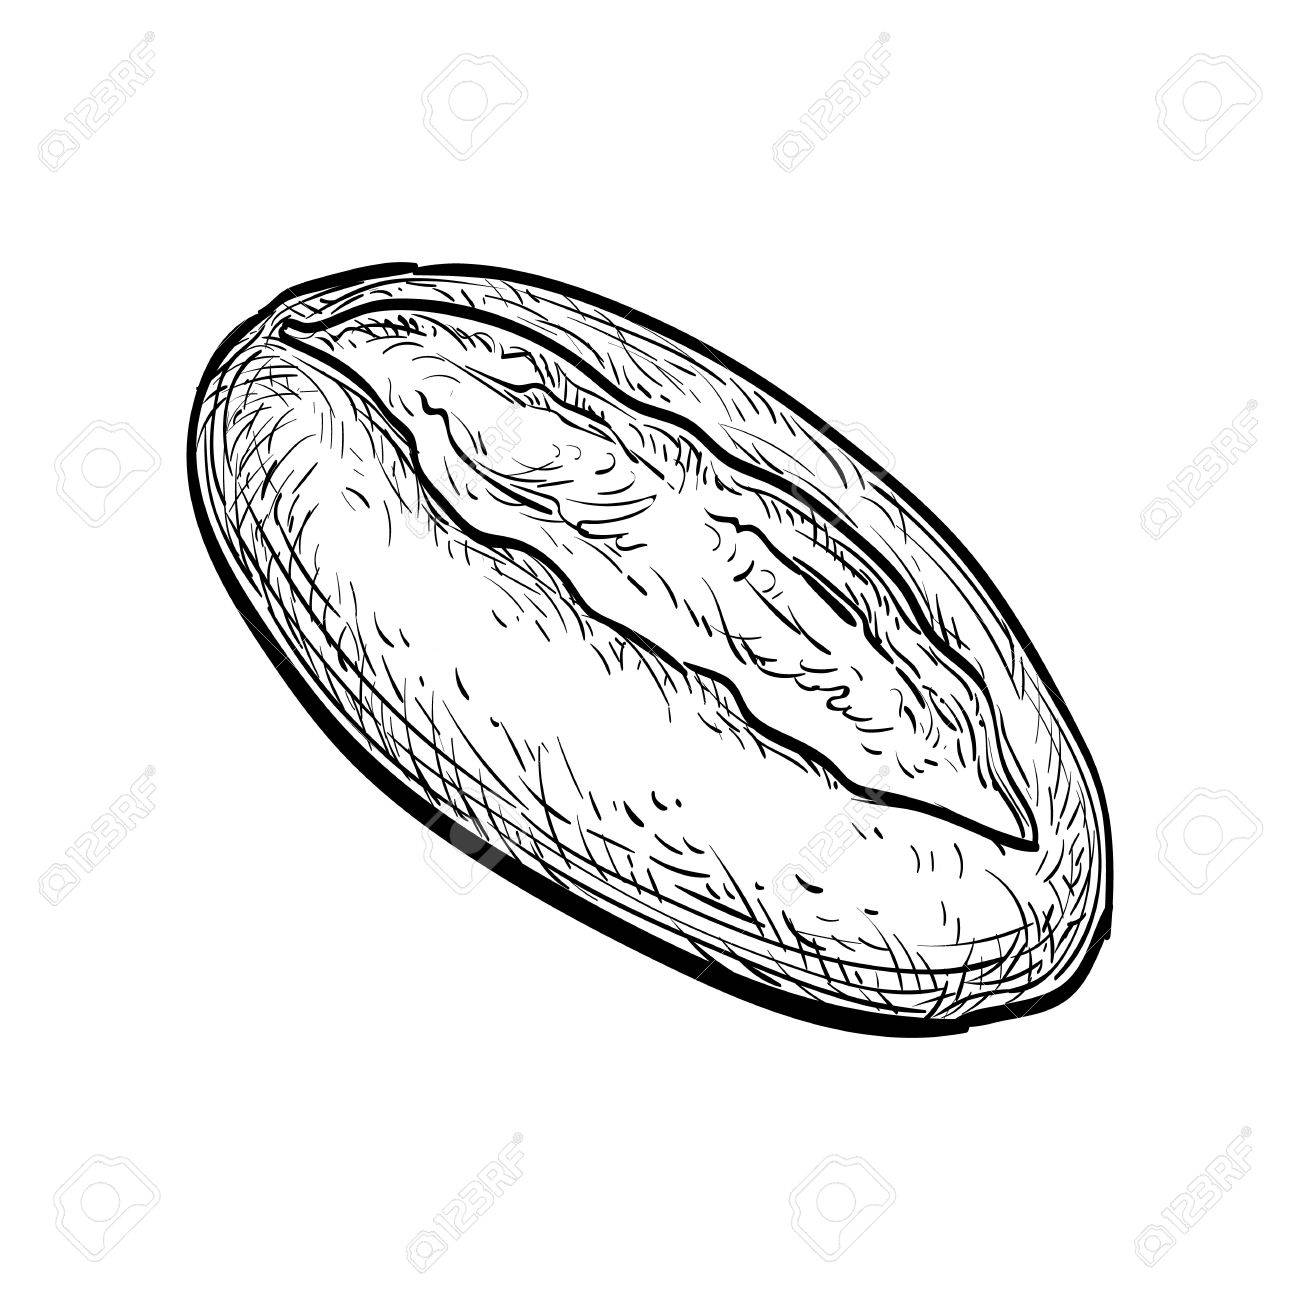 1300x1300 Loaf Of Bread. Royalty Free Cliparts, Vectors, And Stock